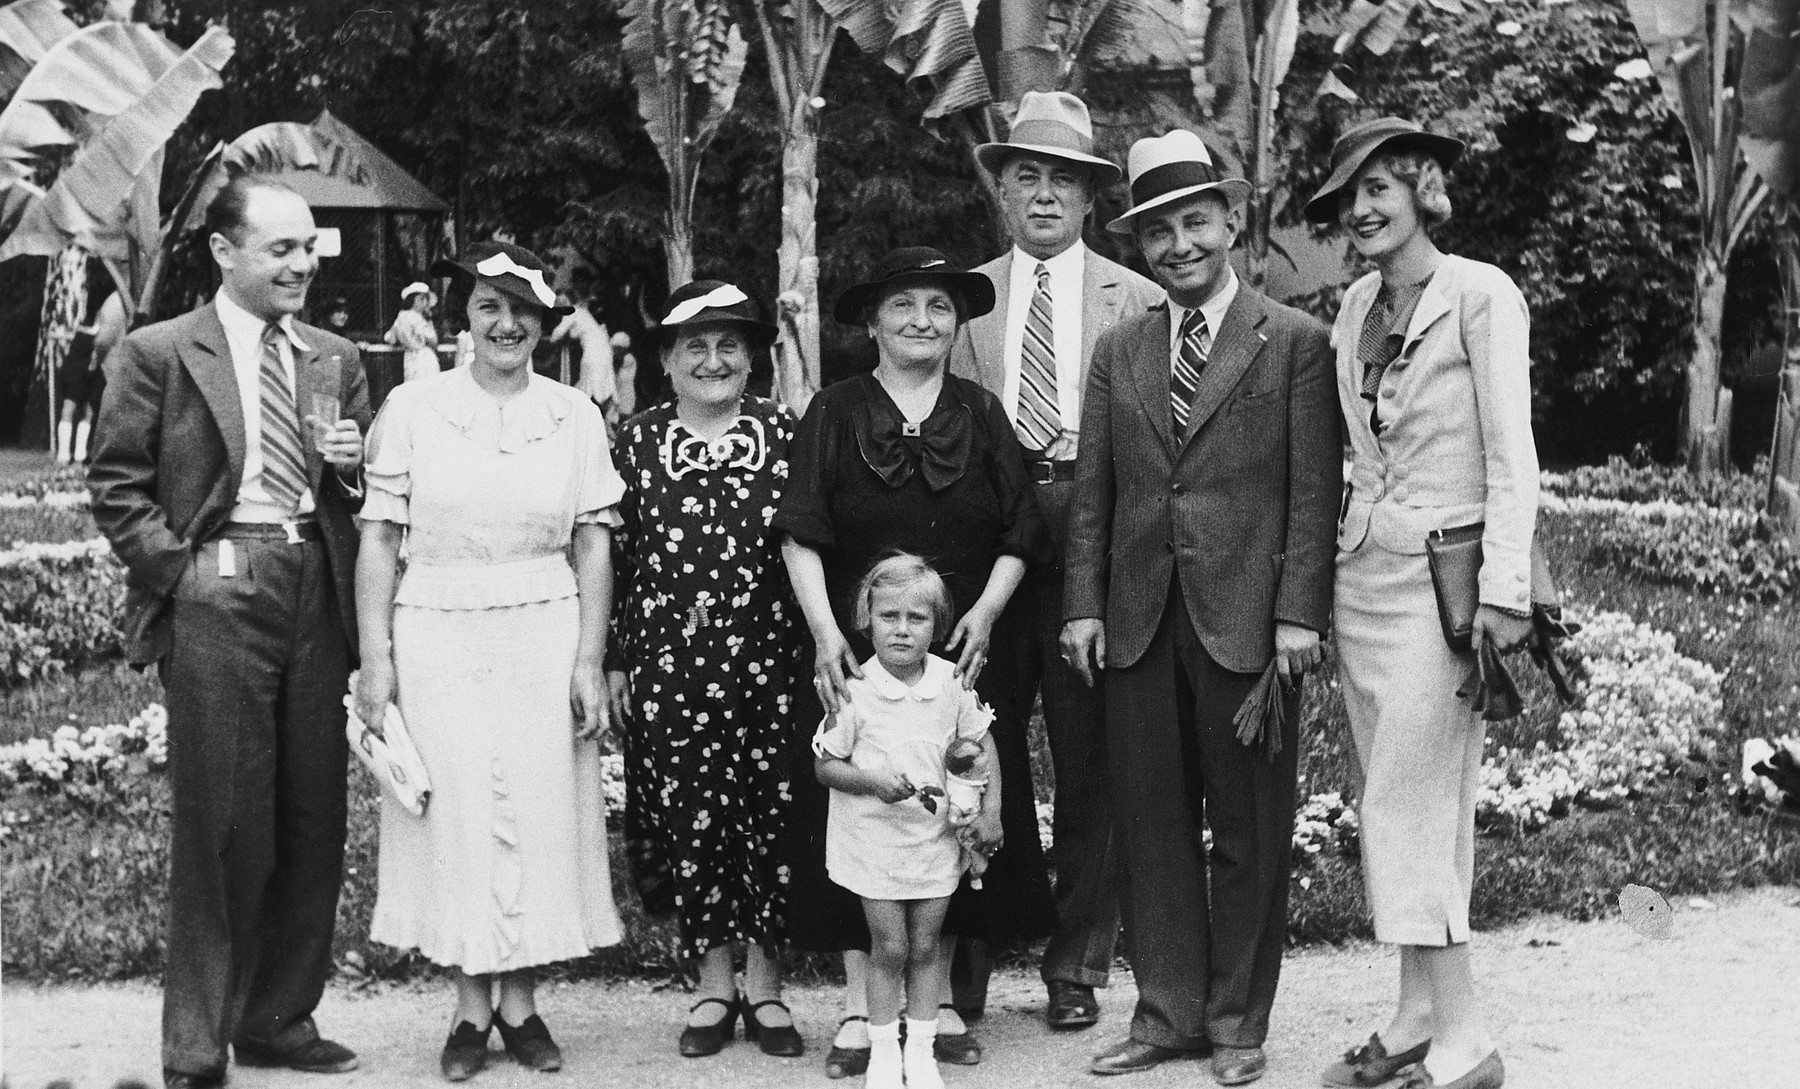 The extended Margolius family poses for a family portrait in a formal garden.  From left to right are Ota and Katerina Margolius, an unknown older woman, Ota's parents Gisela and Gustav, their daughter Ines, and his brother Franticek with his wife.